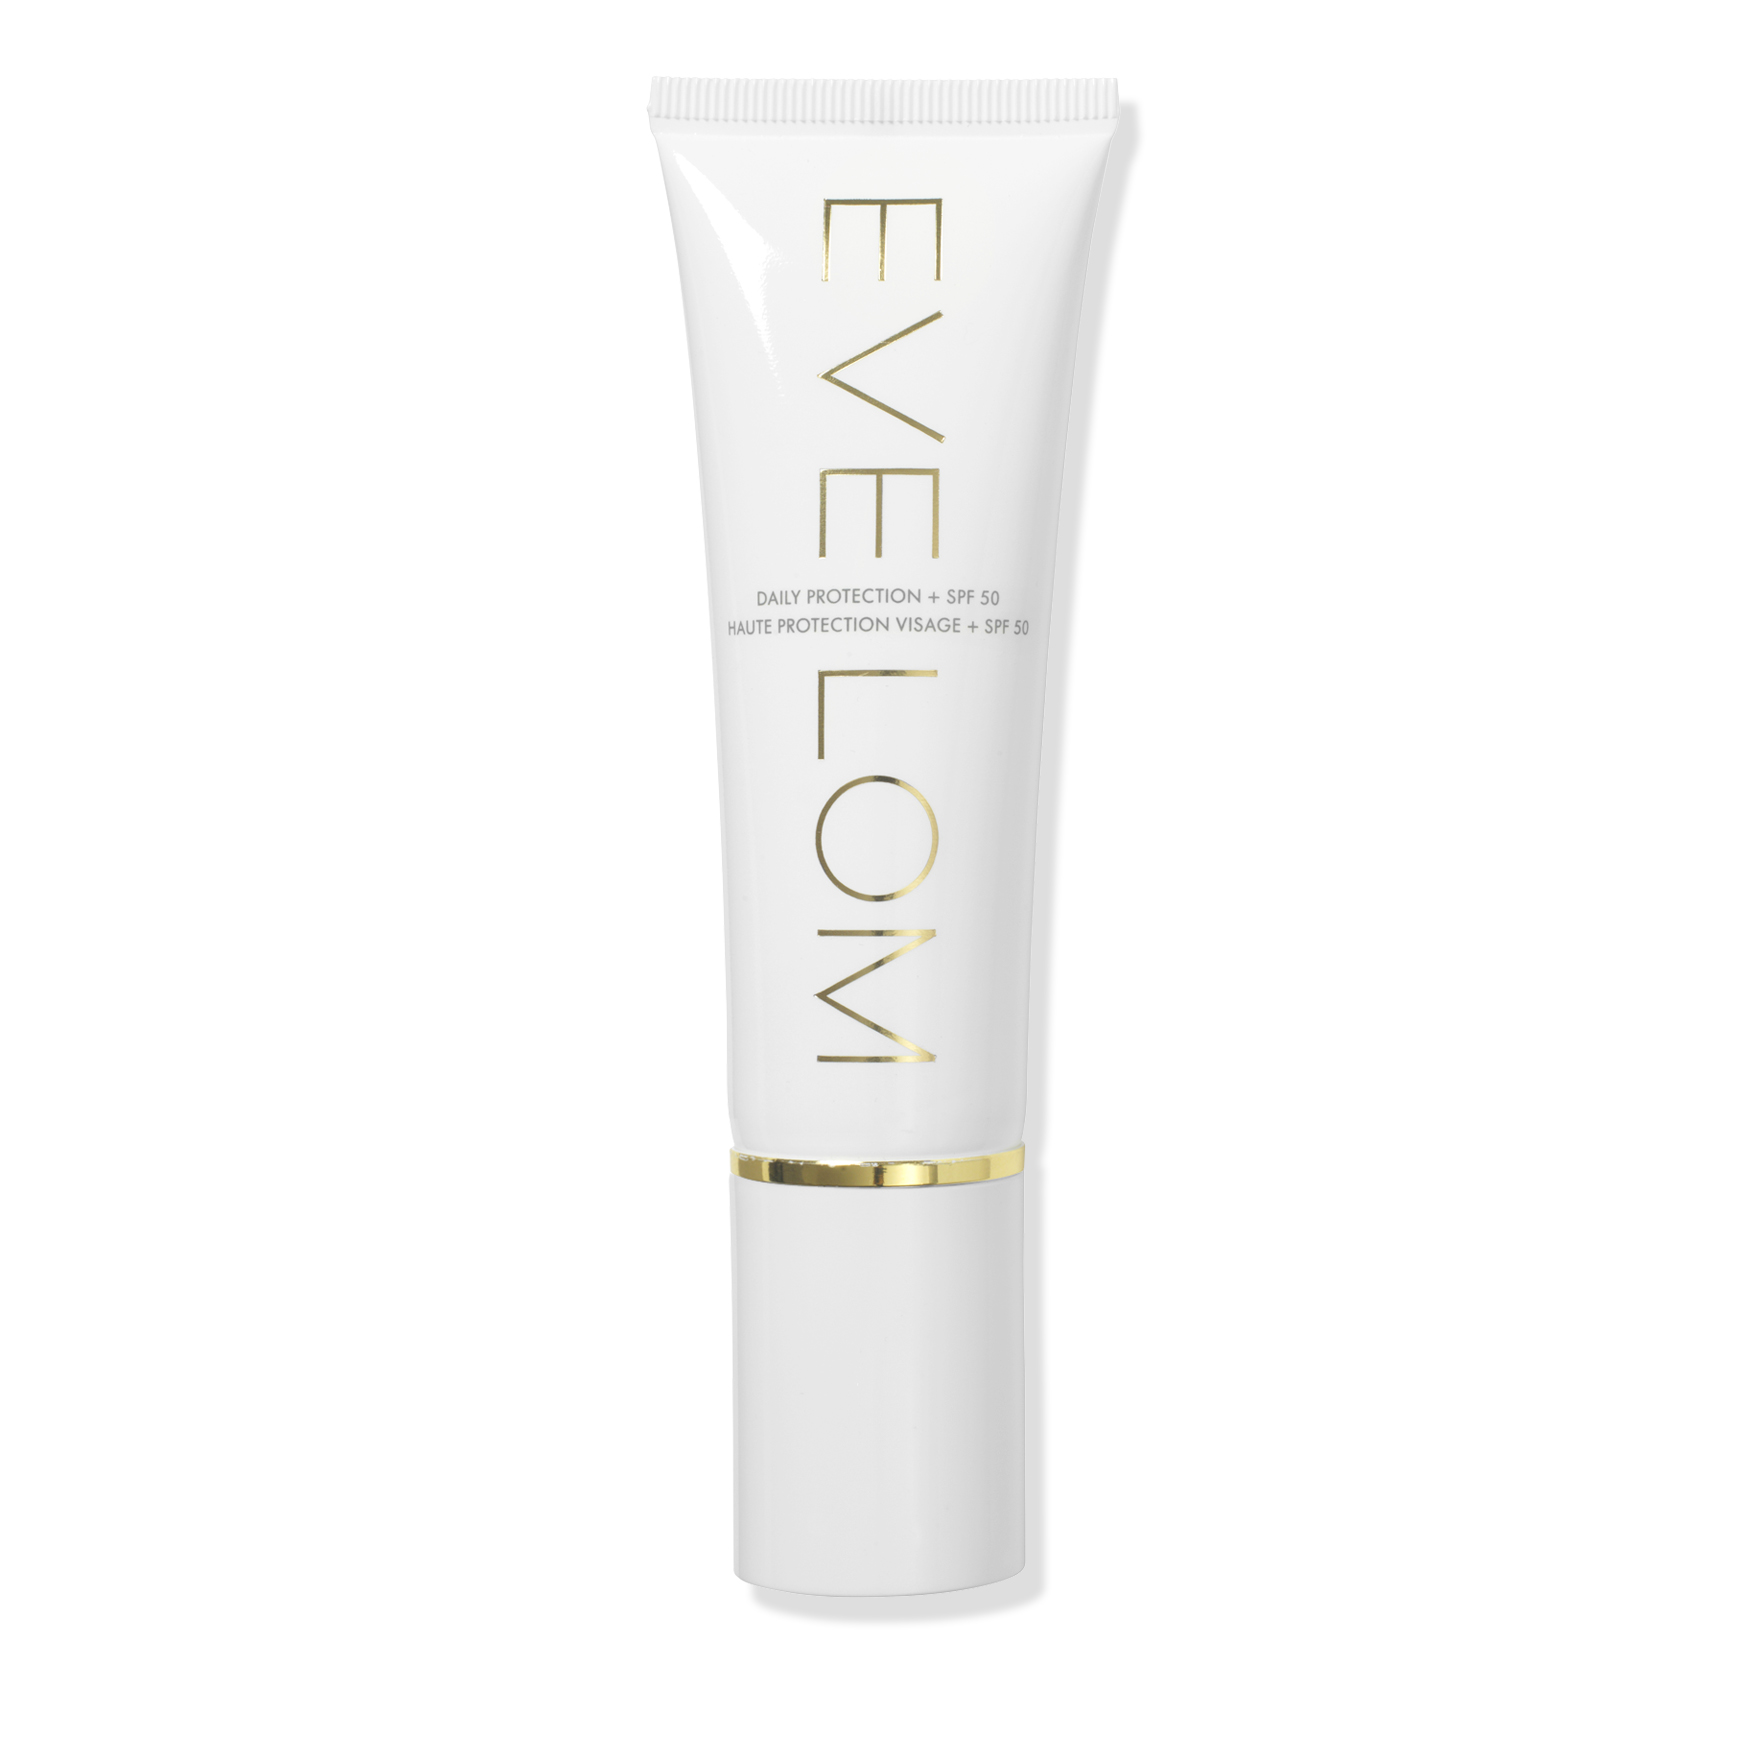 Daily Protection SPF 50, , large